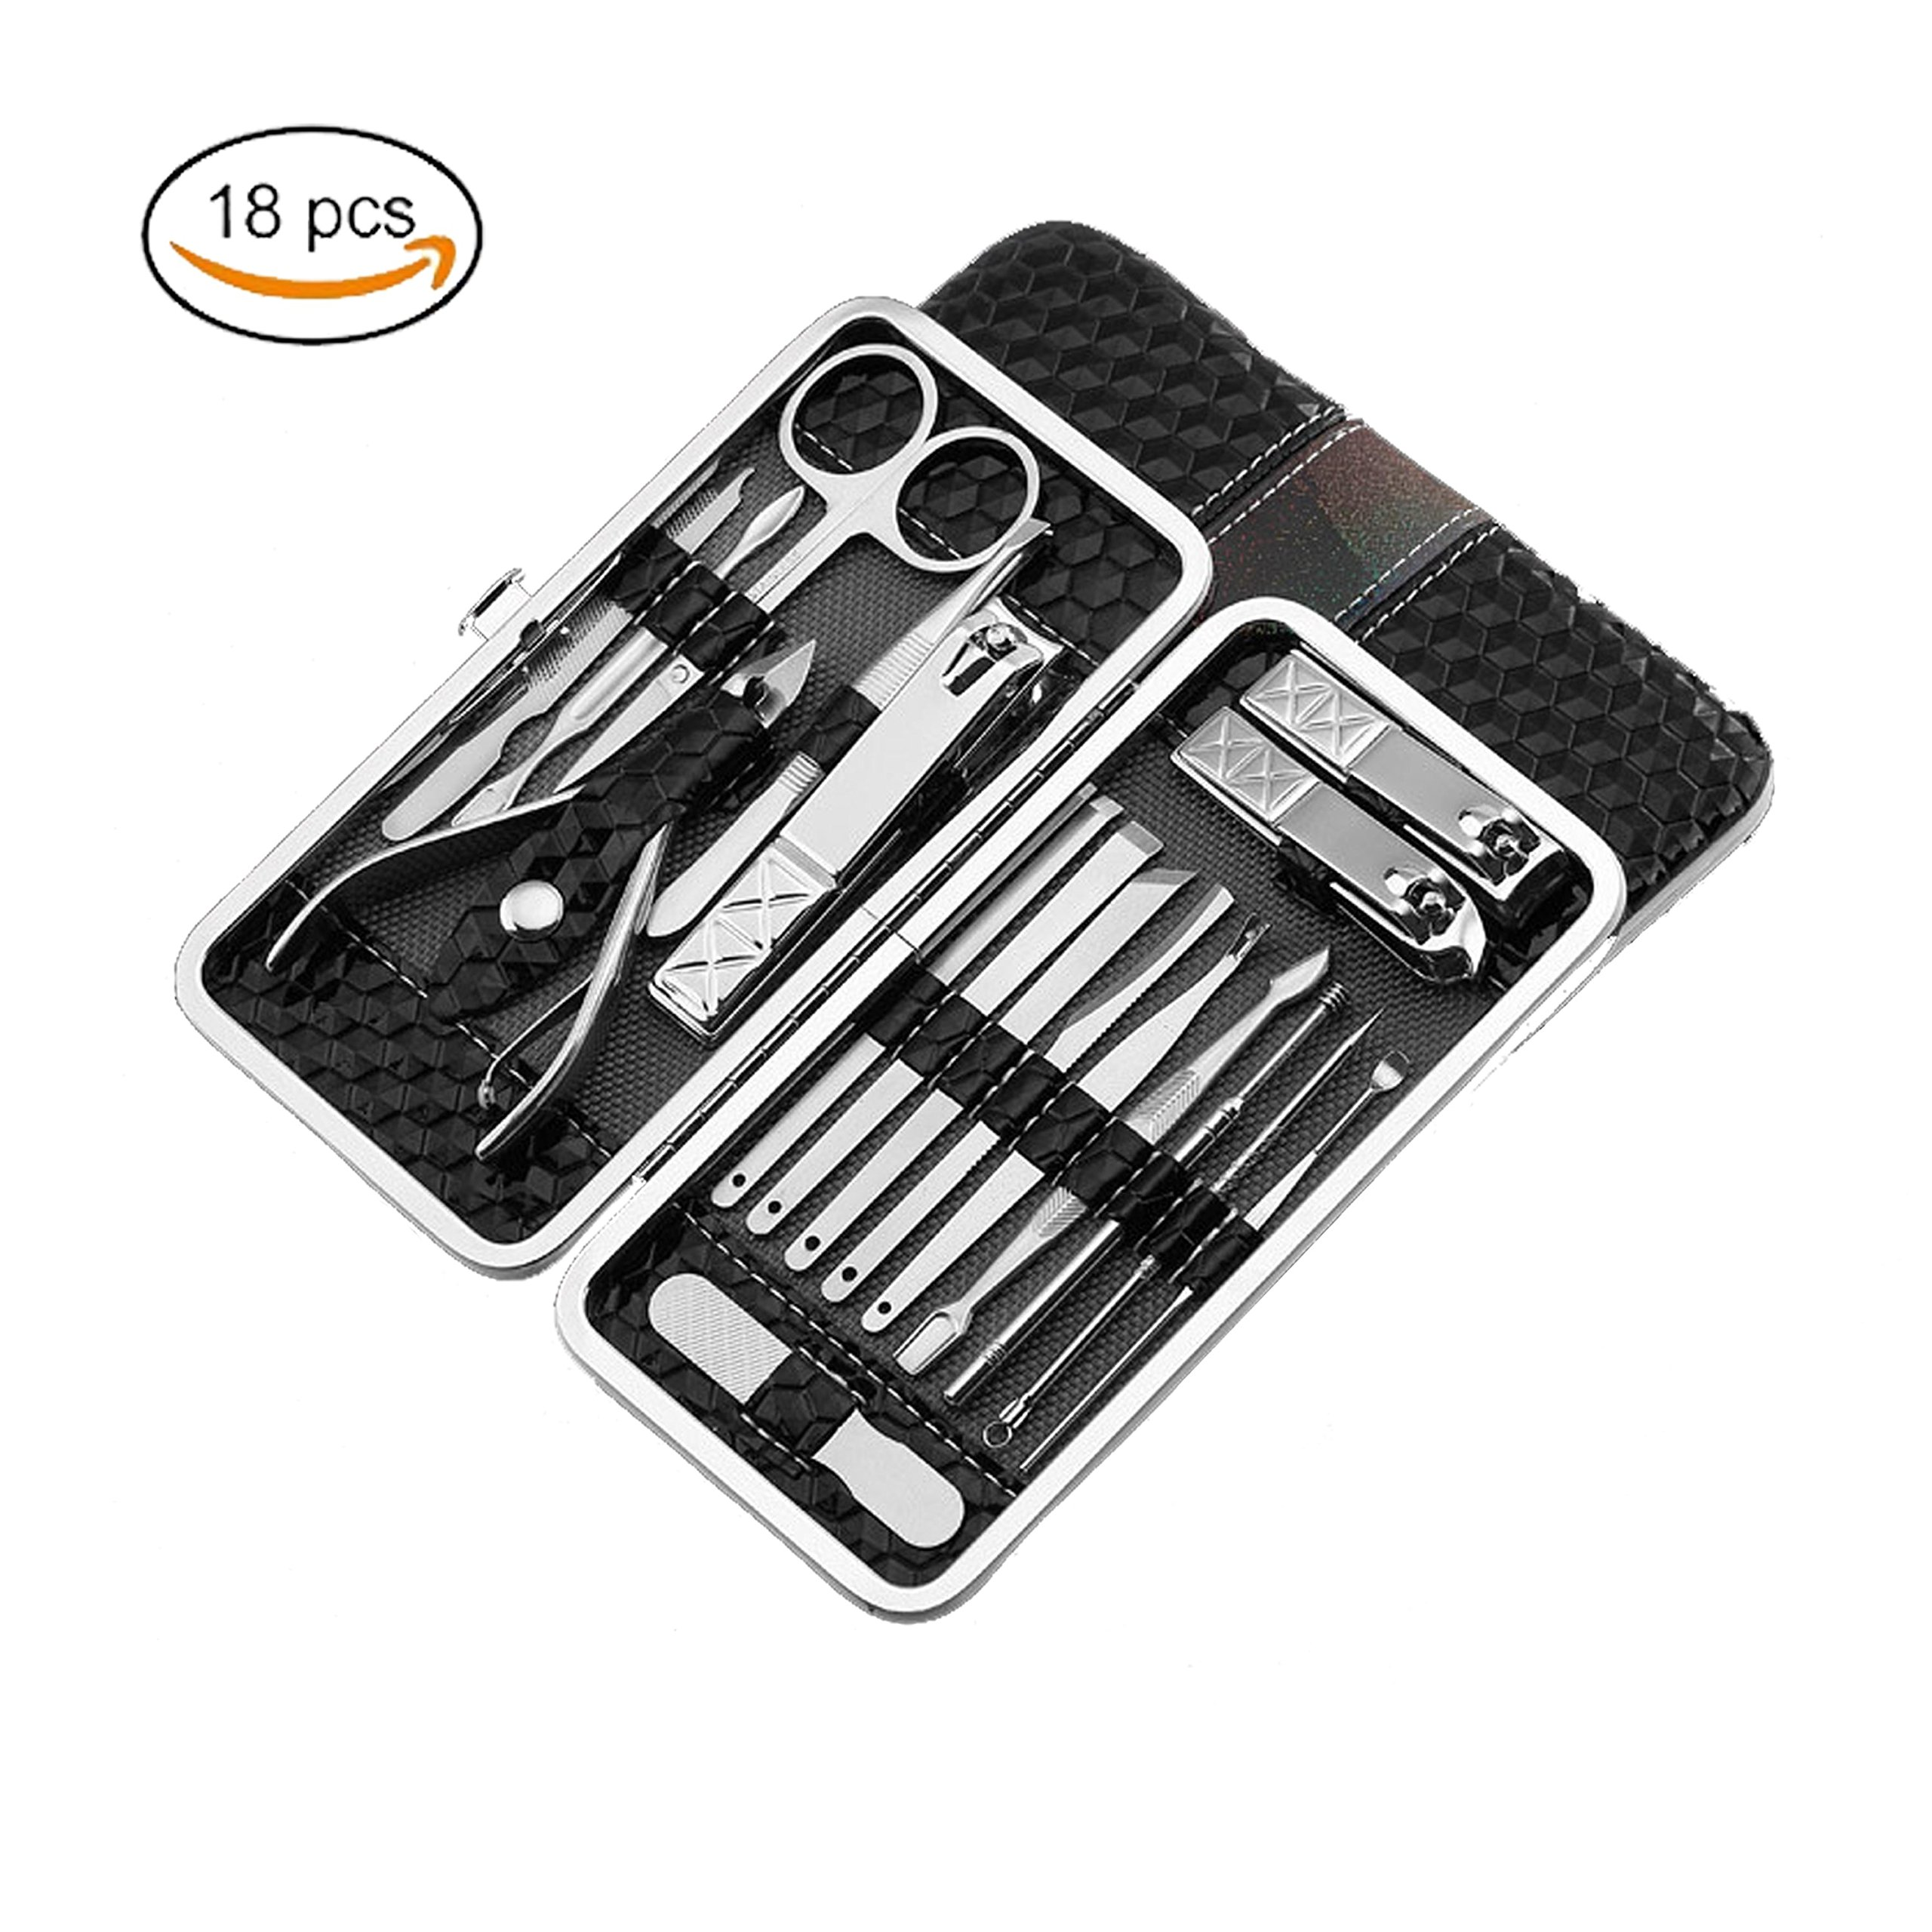 Manicure Set Nail Clipper Kit DOROIM Stainless Steel Manicure Pedicure with Leather Case,Professional Hygiene Kit Nail Tools with Portable Travel Case Beauty Care Tools (black)